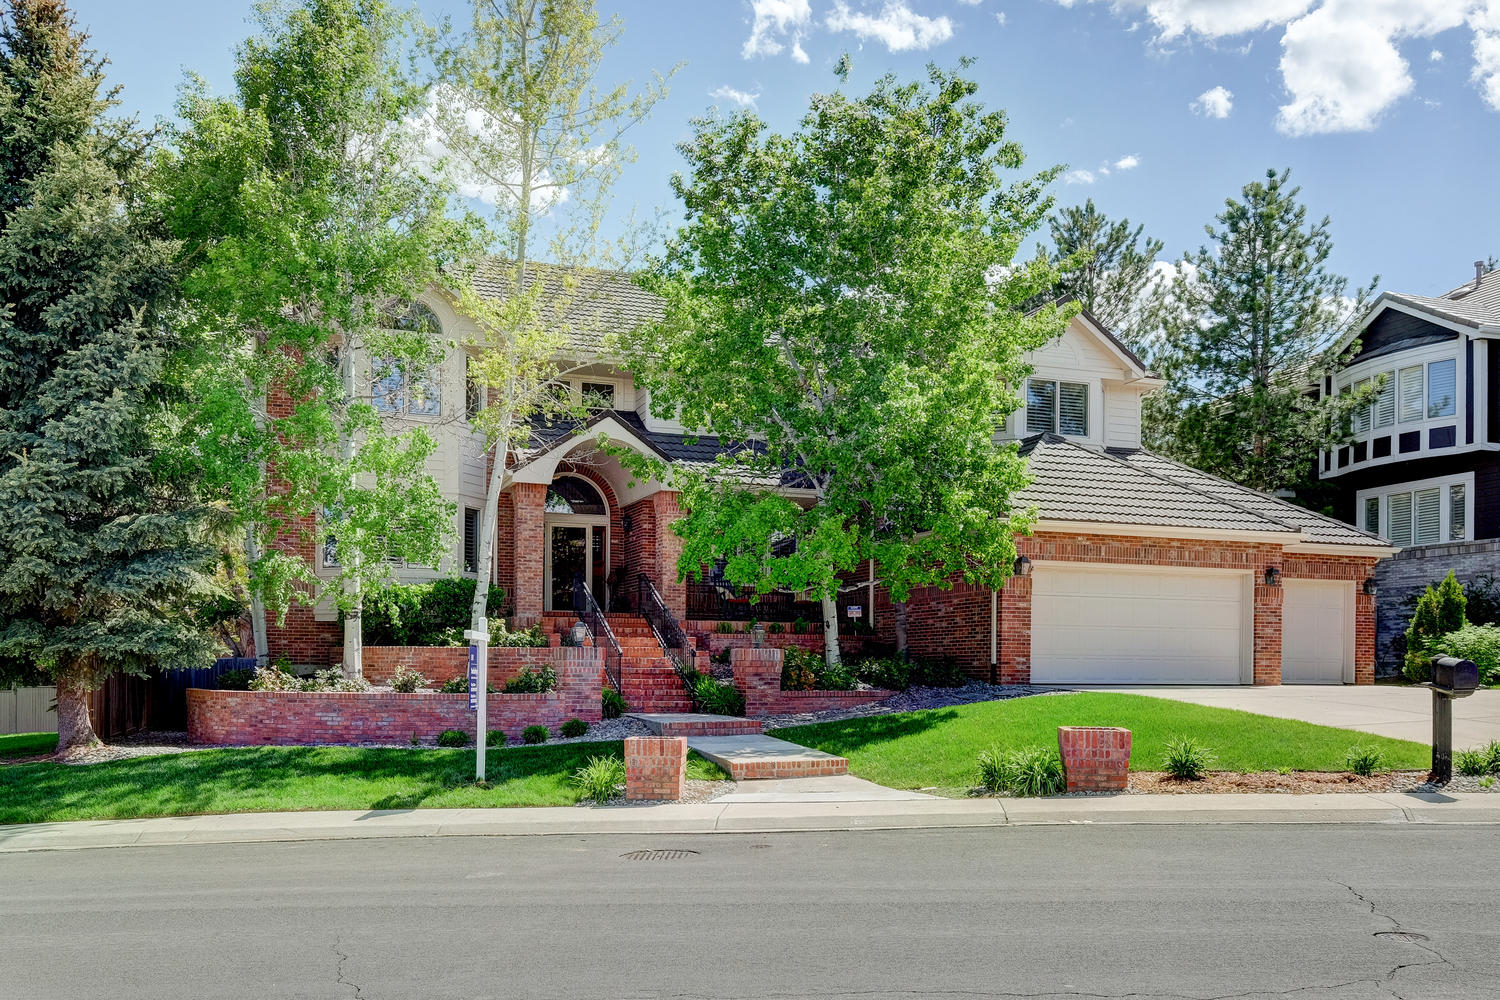 Maison unifamiliale pour l Vente à The Best in the Hills West 10316 East Crestridge Lane Englewood, Colorado, 80111 États-Unis